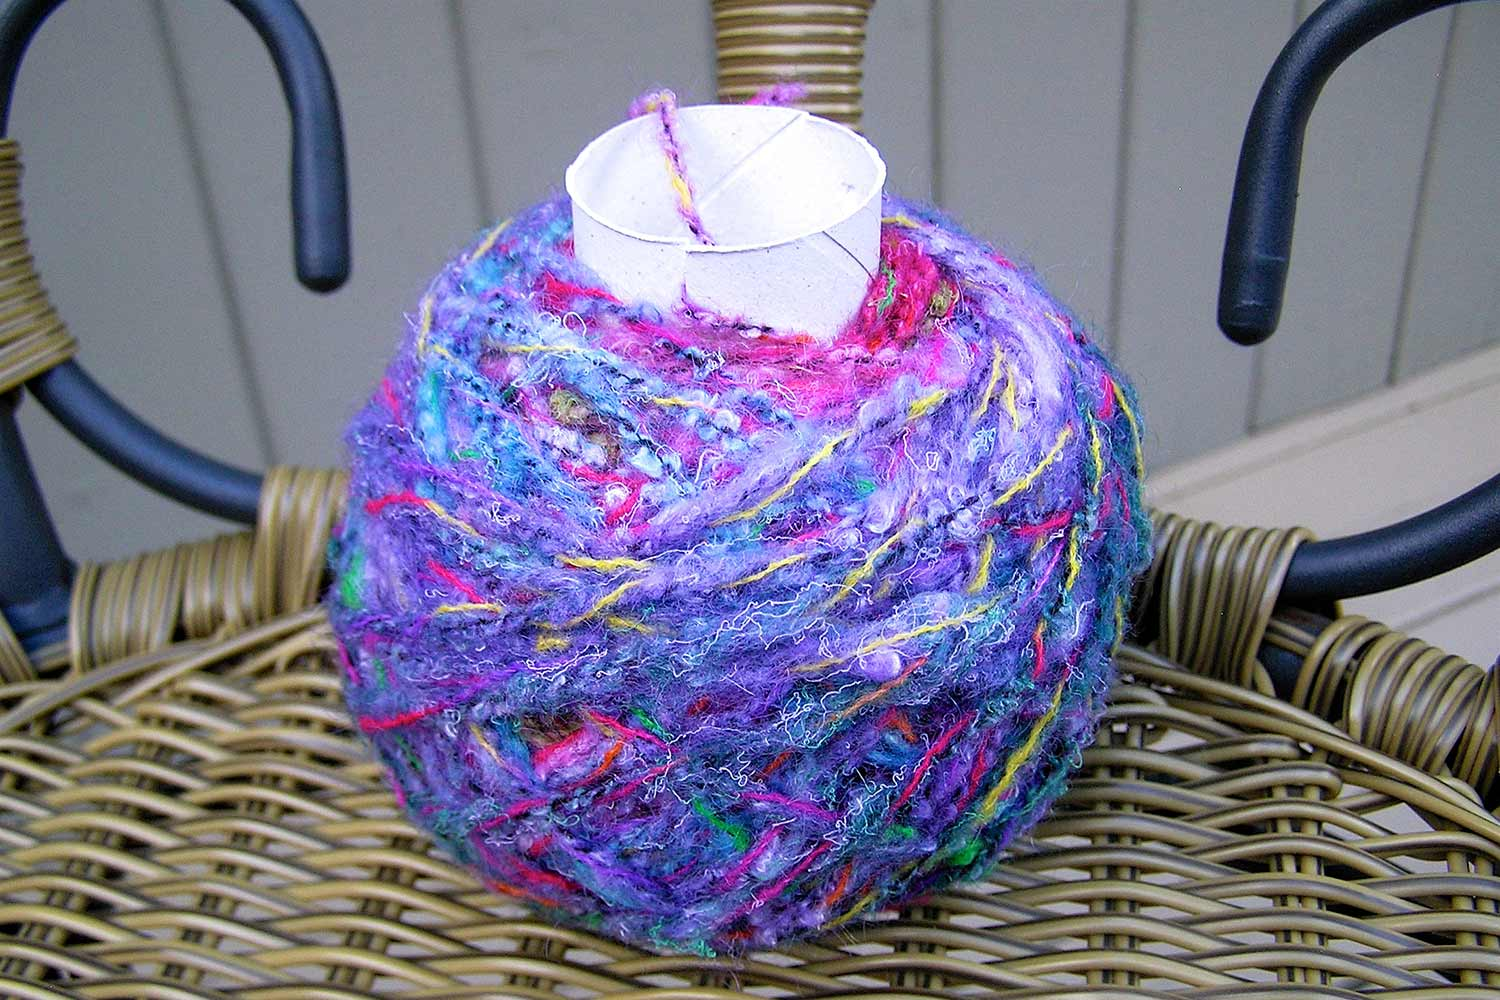 Toilet paper tube with a full skein of yarn wrapped around it looking very much like a ball of yarn.